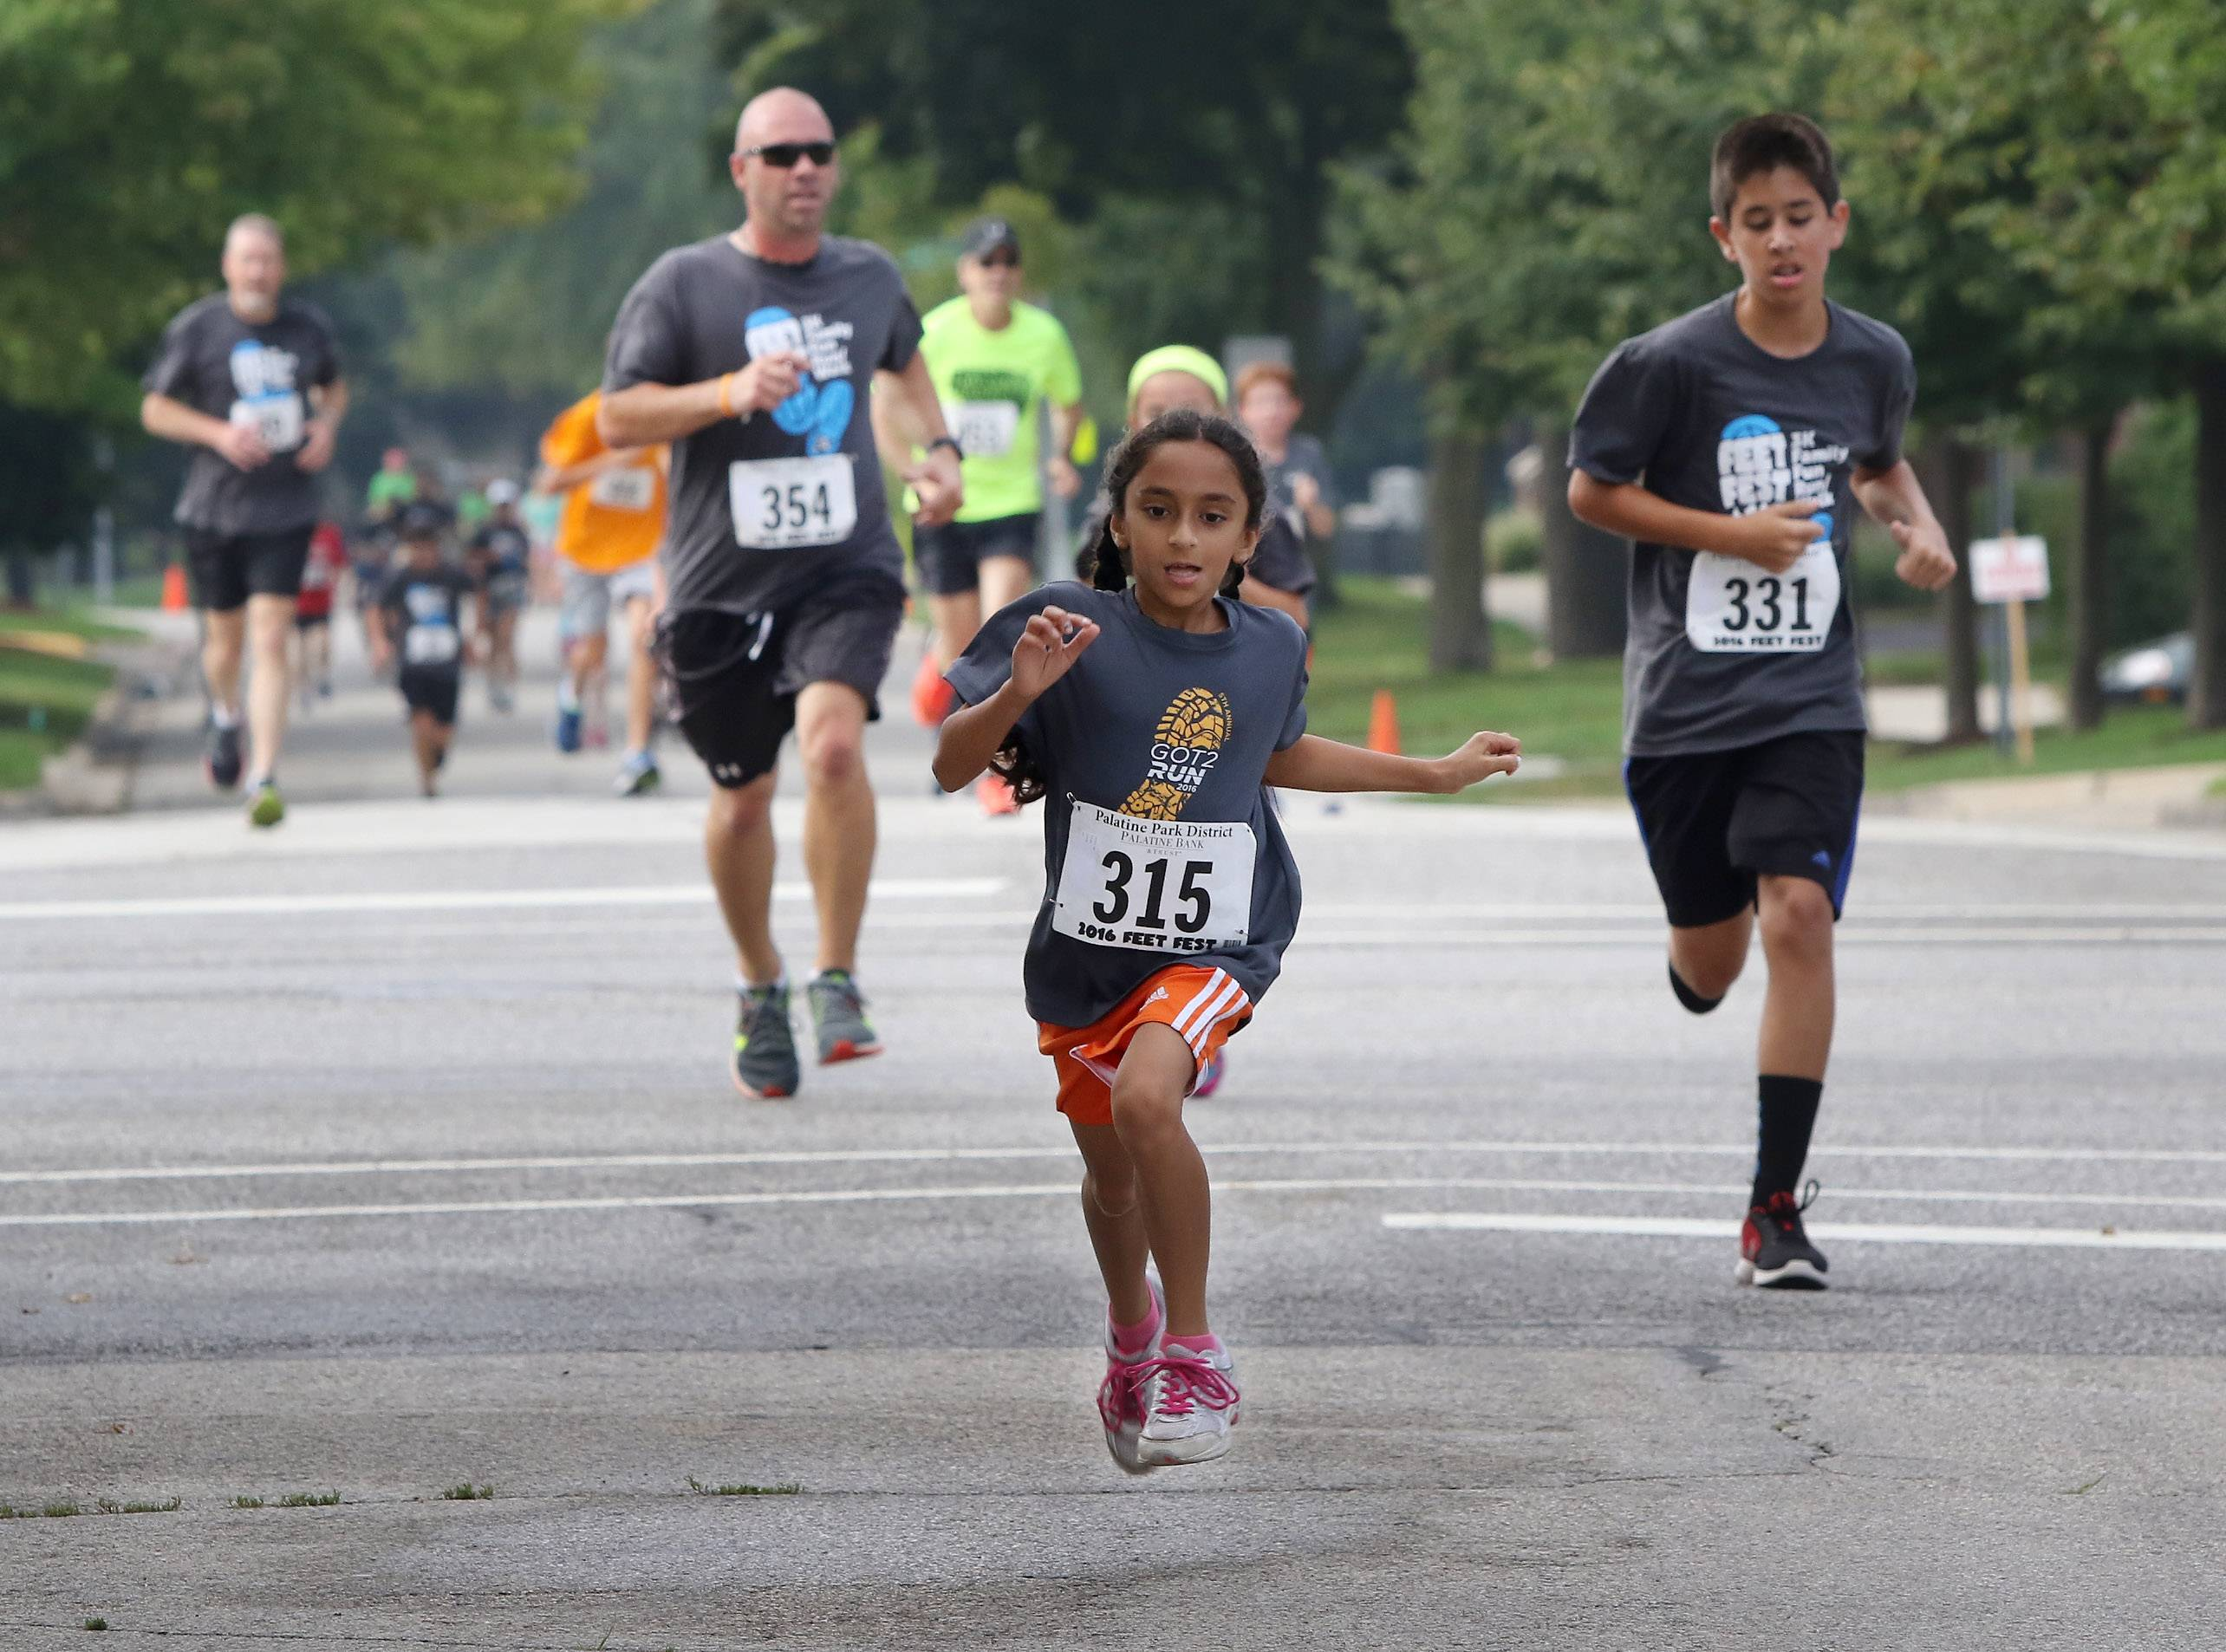 Sia Purohit, 9, of Hoffman Estates sprints across the finish line during the Palatine Feet Fest 5K run on Sunday at Towne Square. The event was sponsored by the Palatine Park District in association with the Downtown Palatine Street Fest.